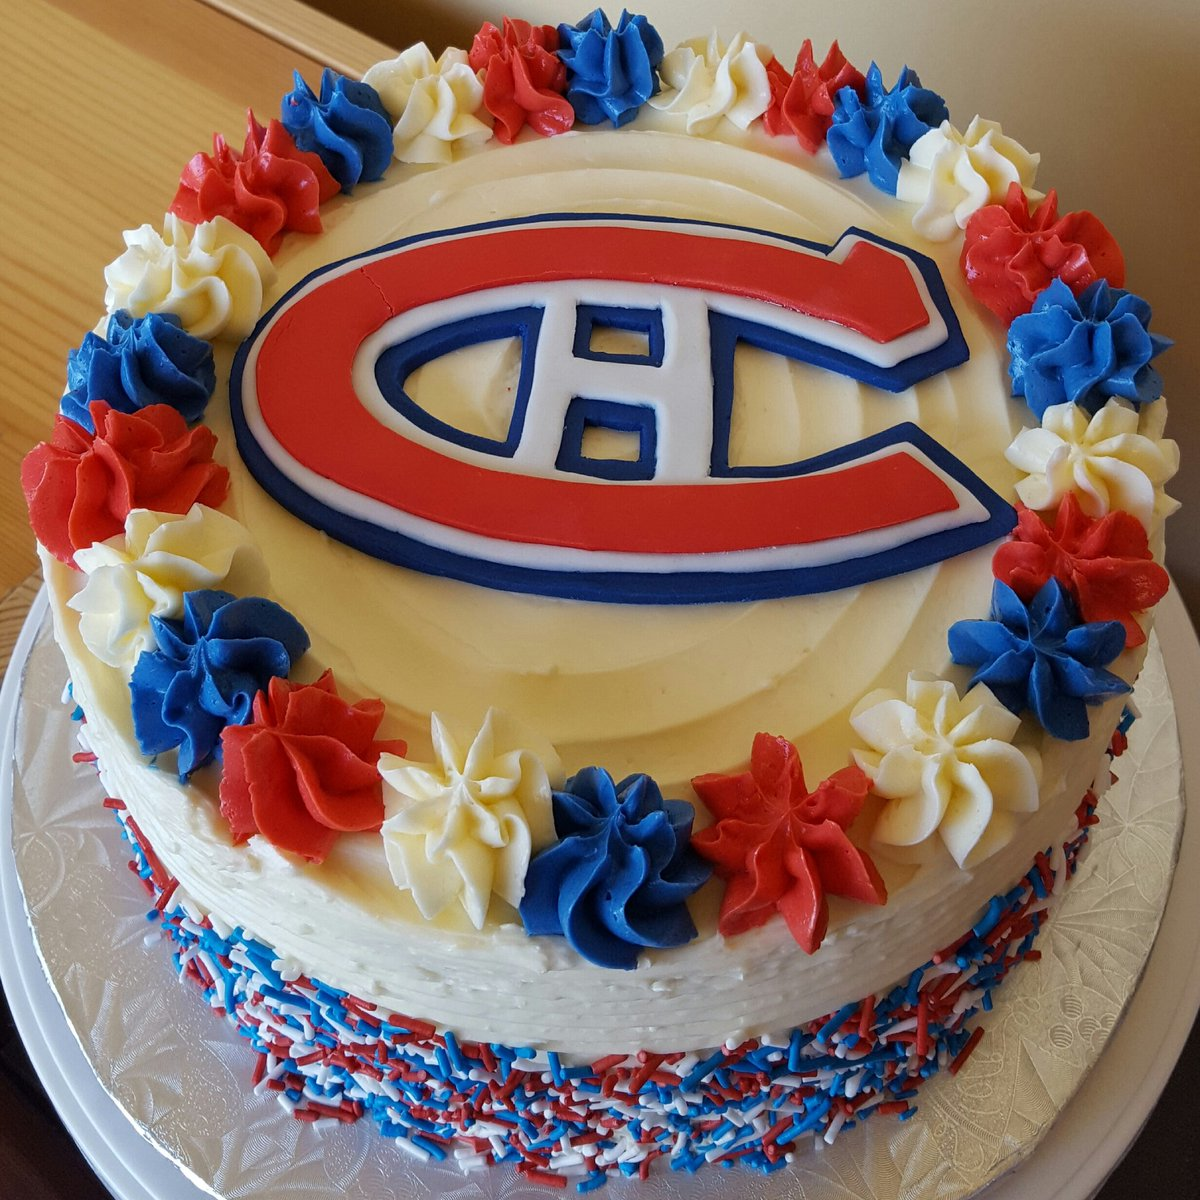 Remarkable Bellamiassweettreats On Twitter Montreal Canadiens Cake Personalised Birthday Cards Petedlily Jamesorg